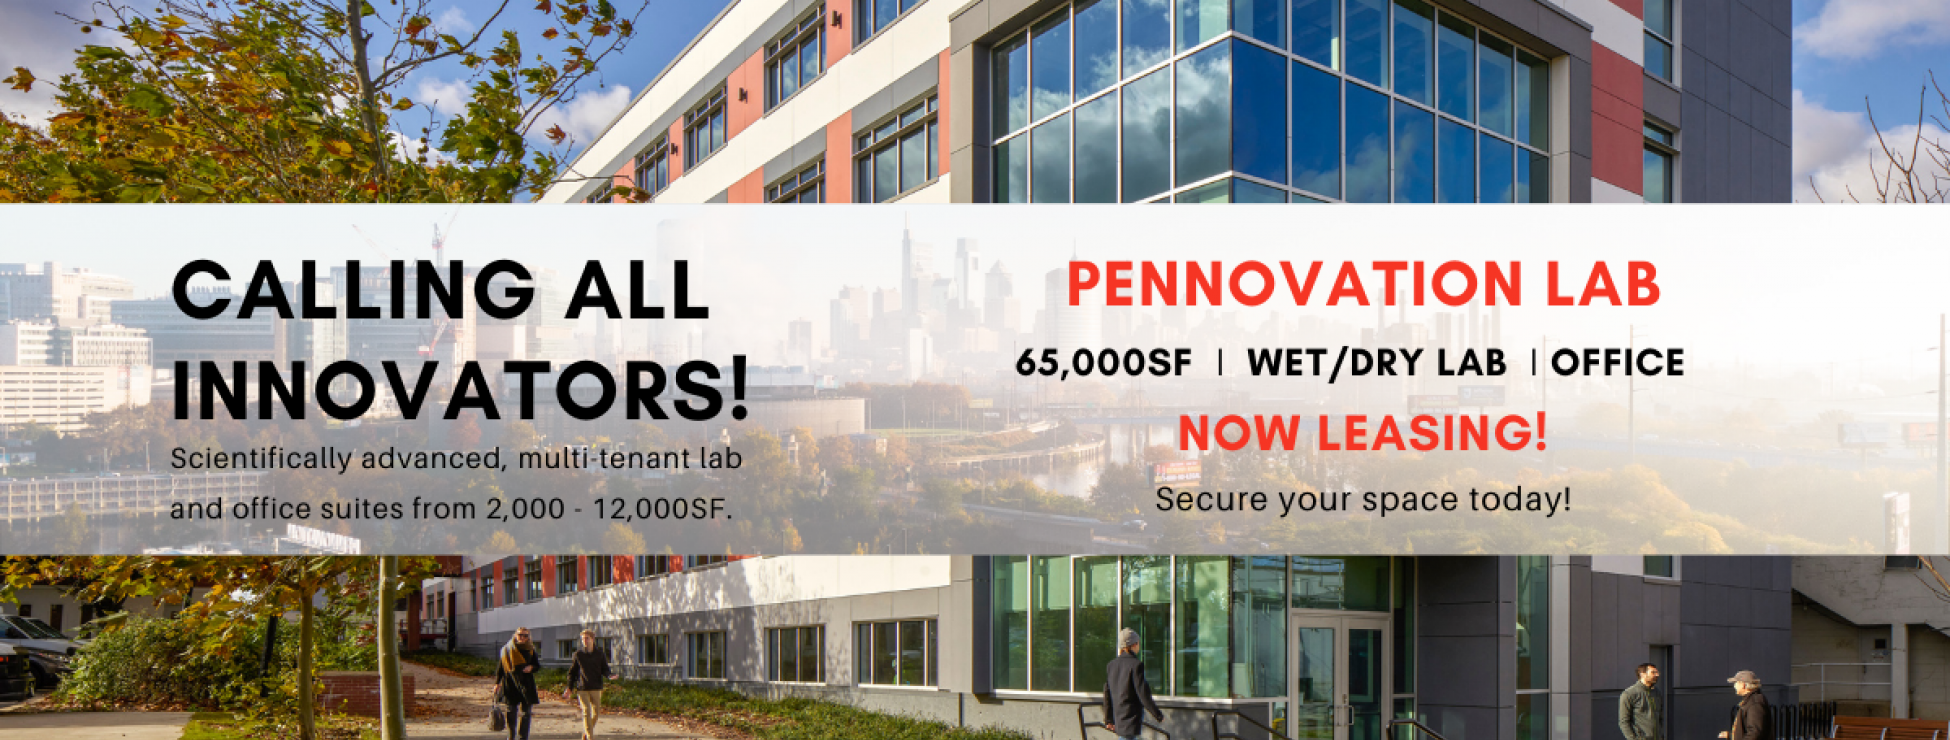 pennovation lab promotional with text